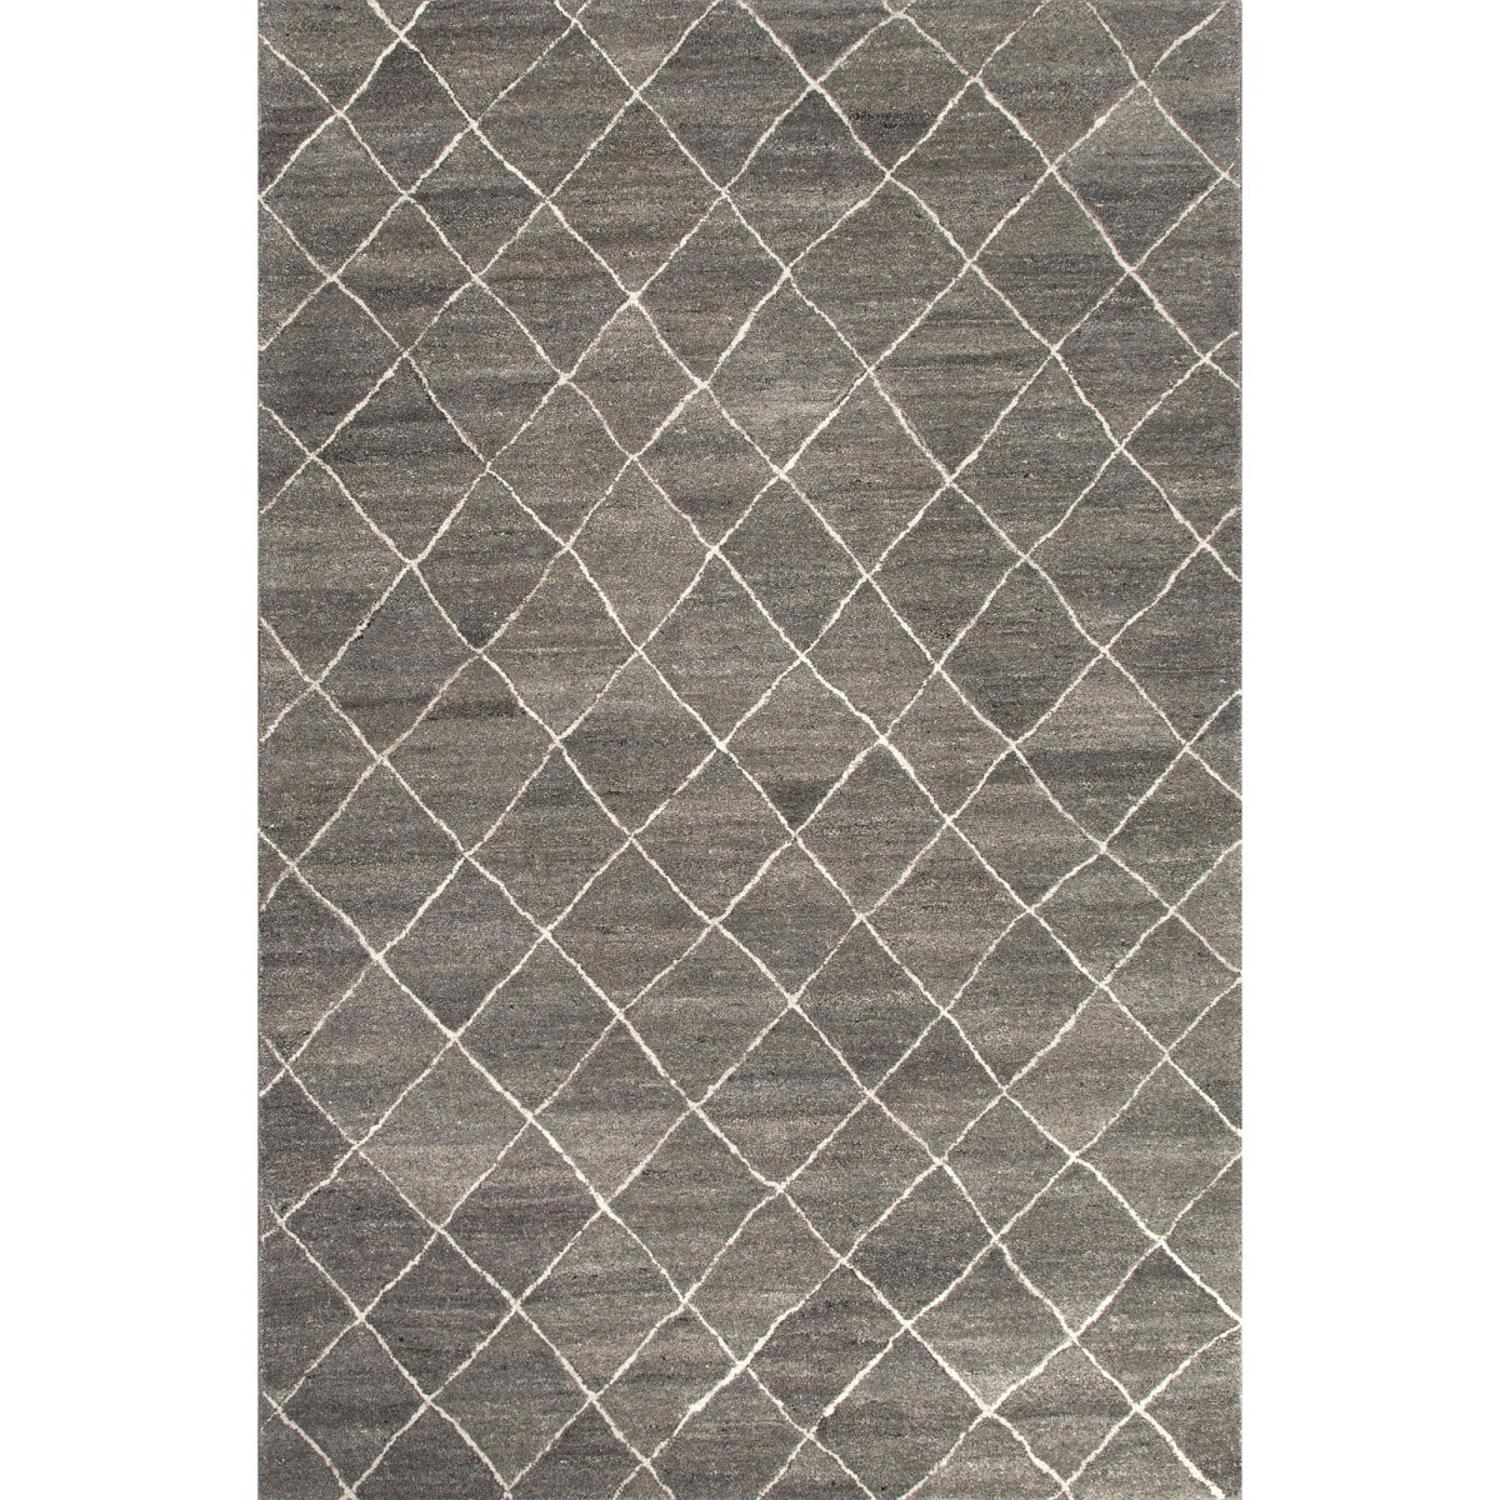 5' x 8' Crushed Stone Gray and Snow White Modern Gem Hand Tufted Wool Area Throw Rug